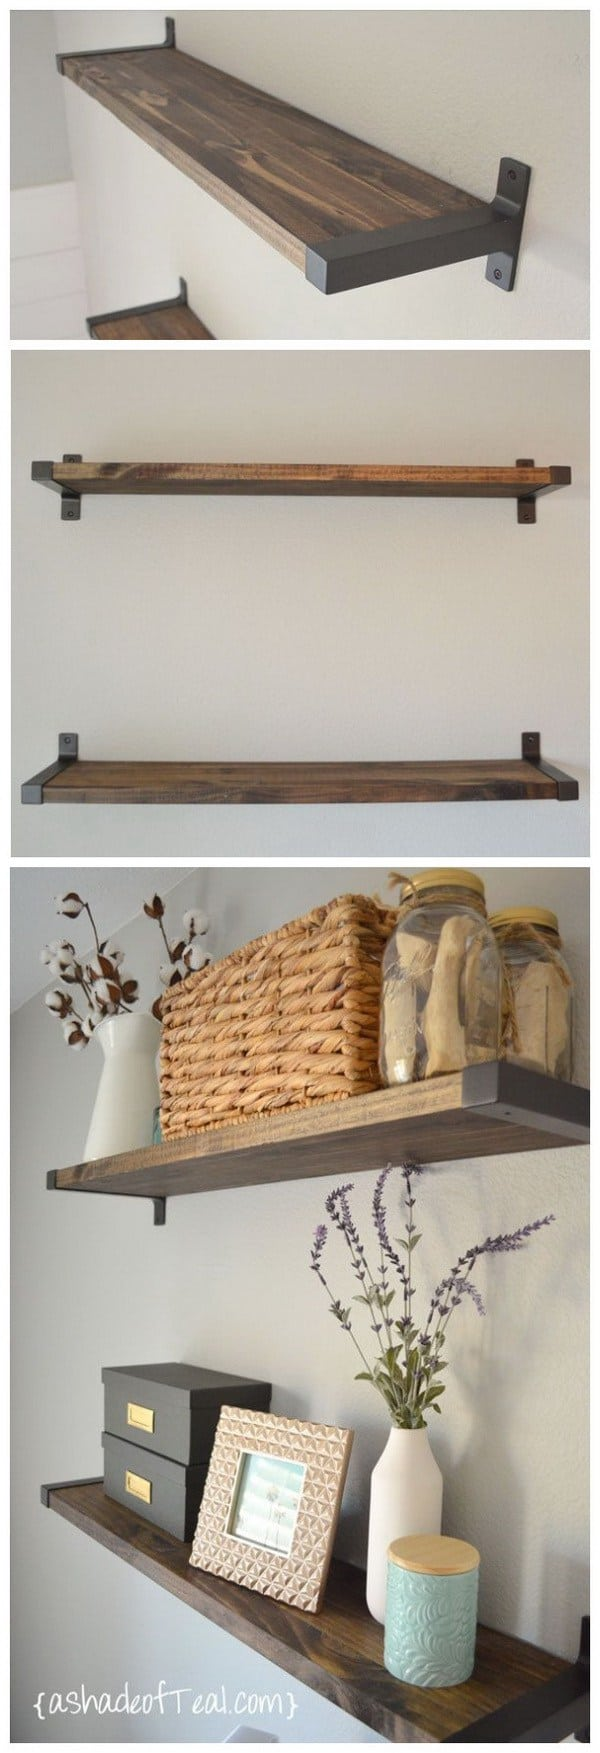 DIY shelves rustic shelf